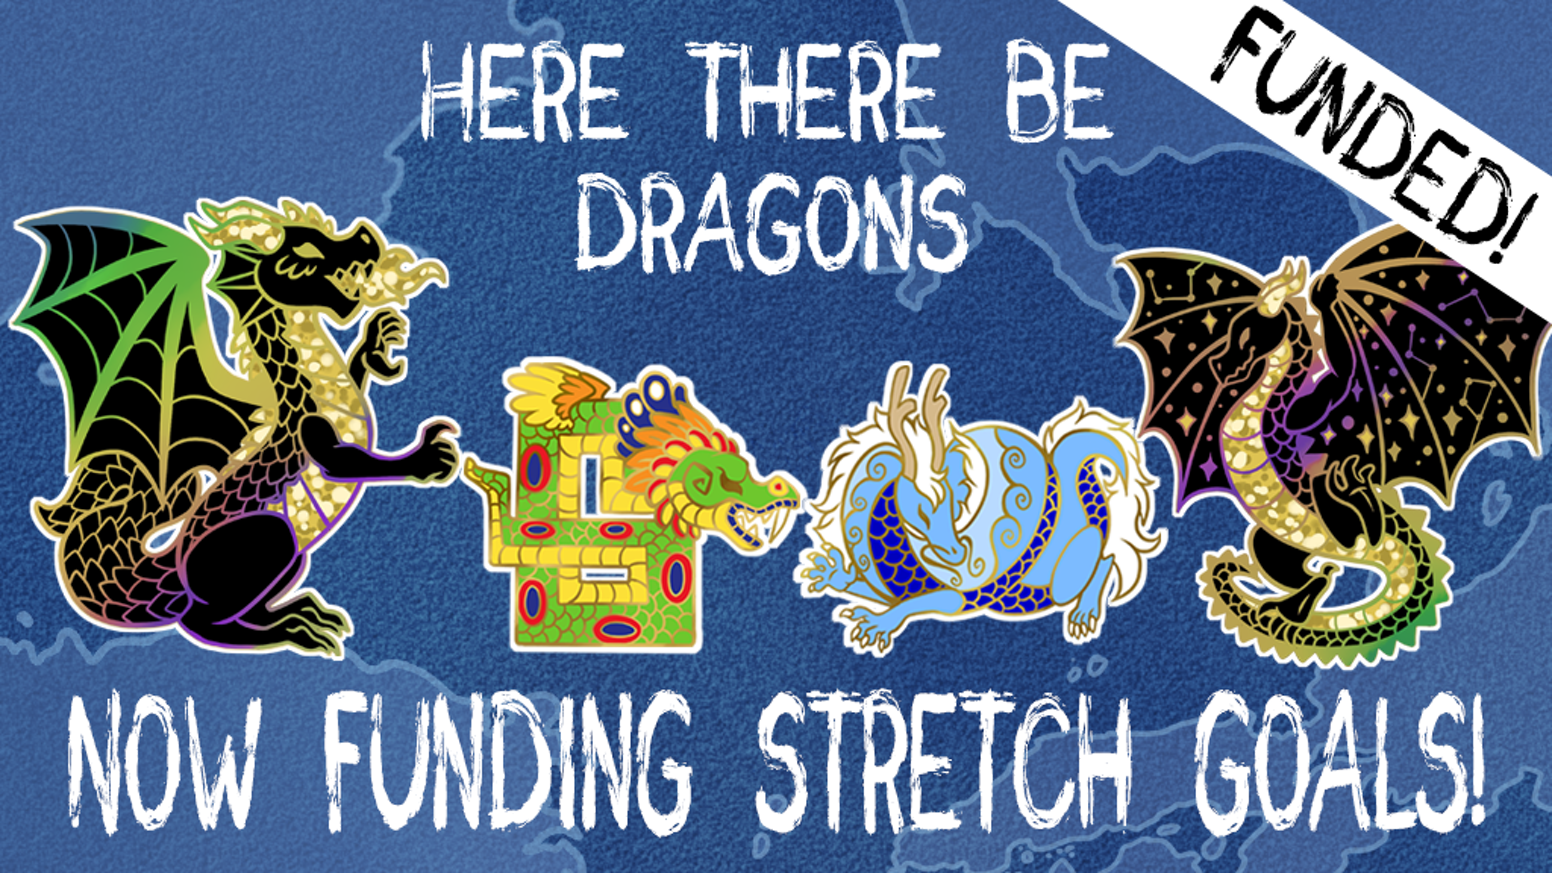 Dragon enamel pins to add some mythological magic to any collection!